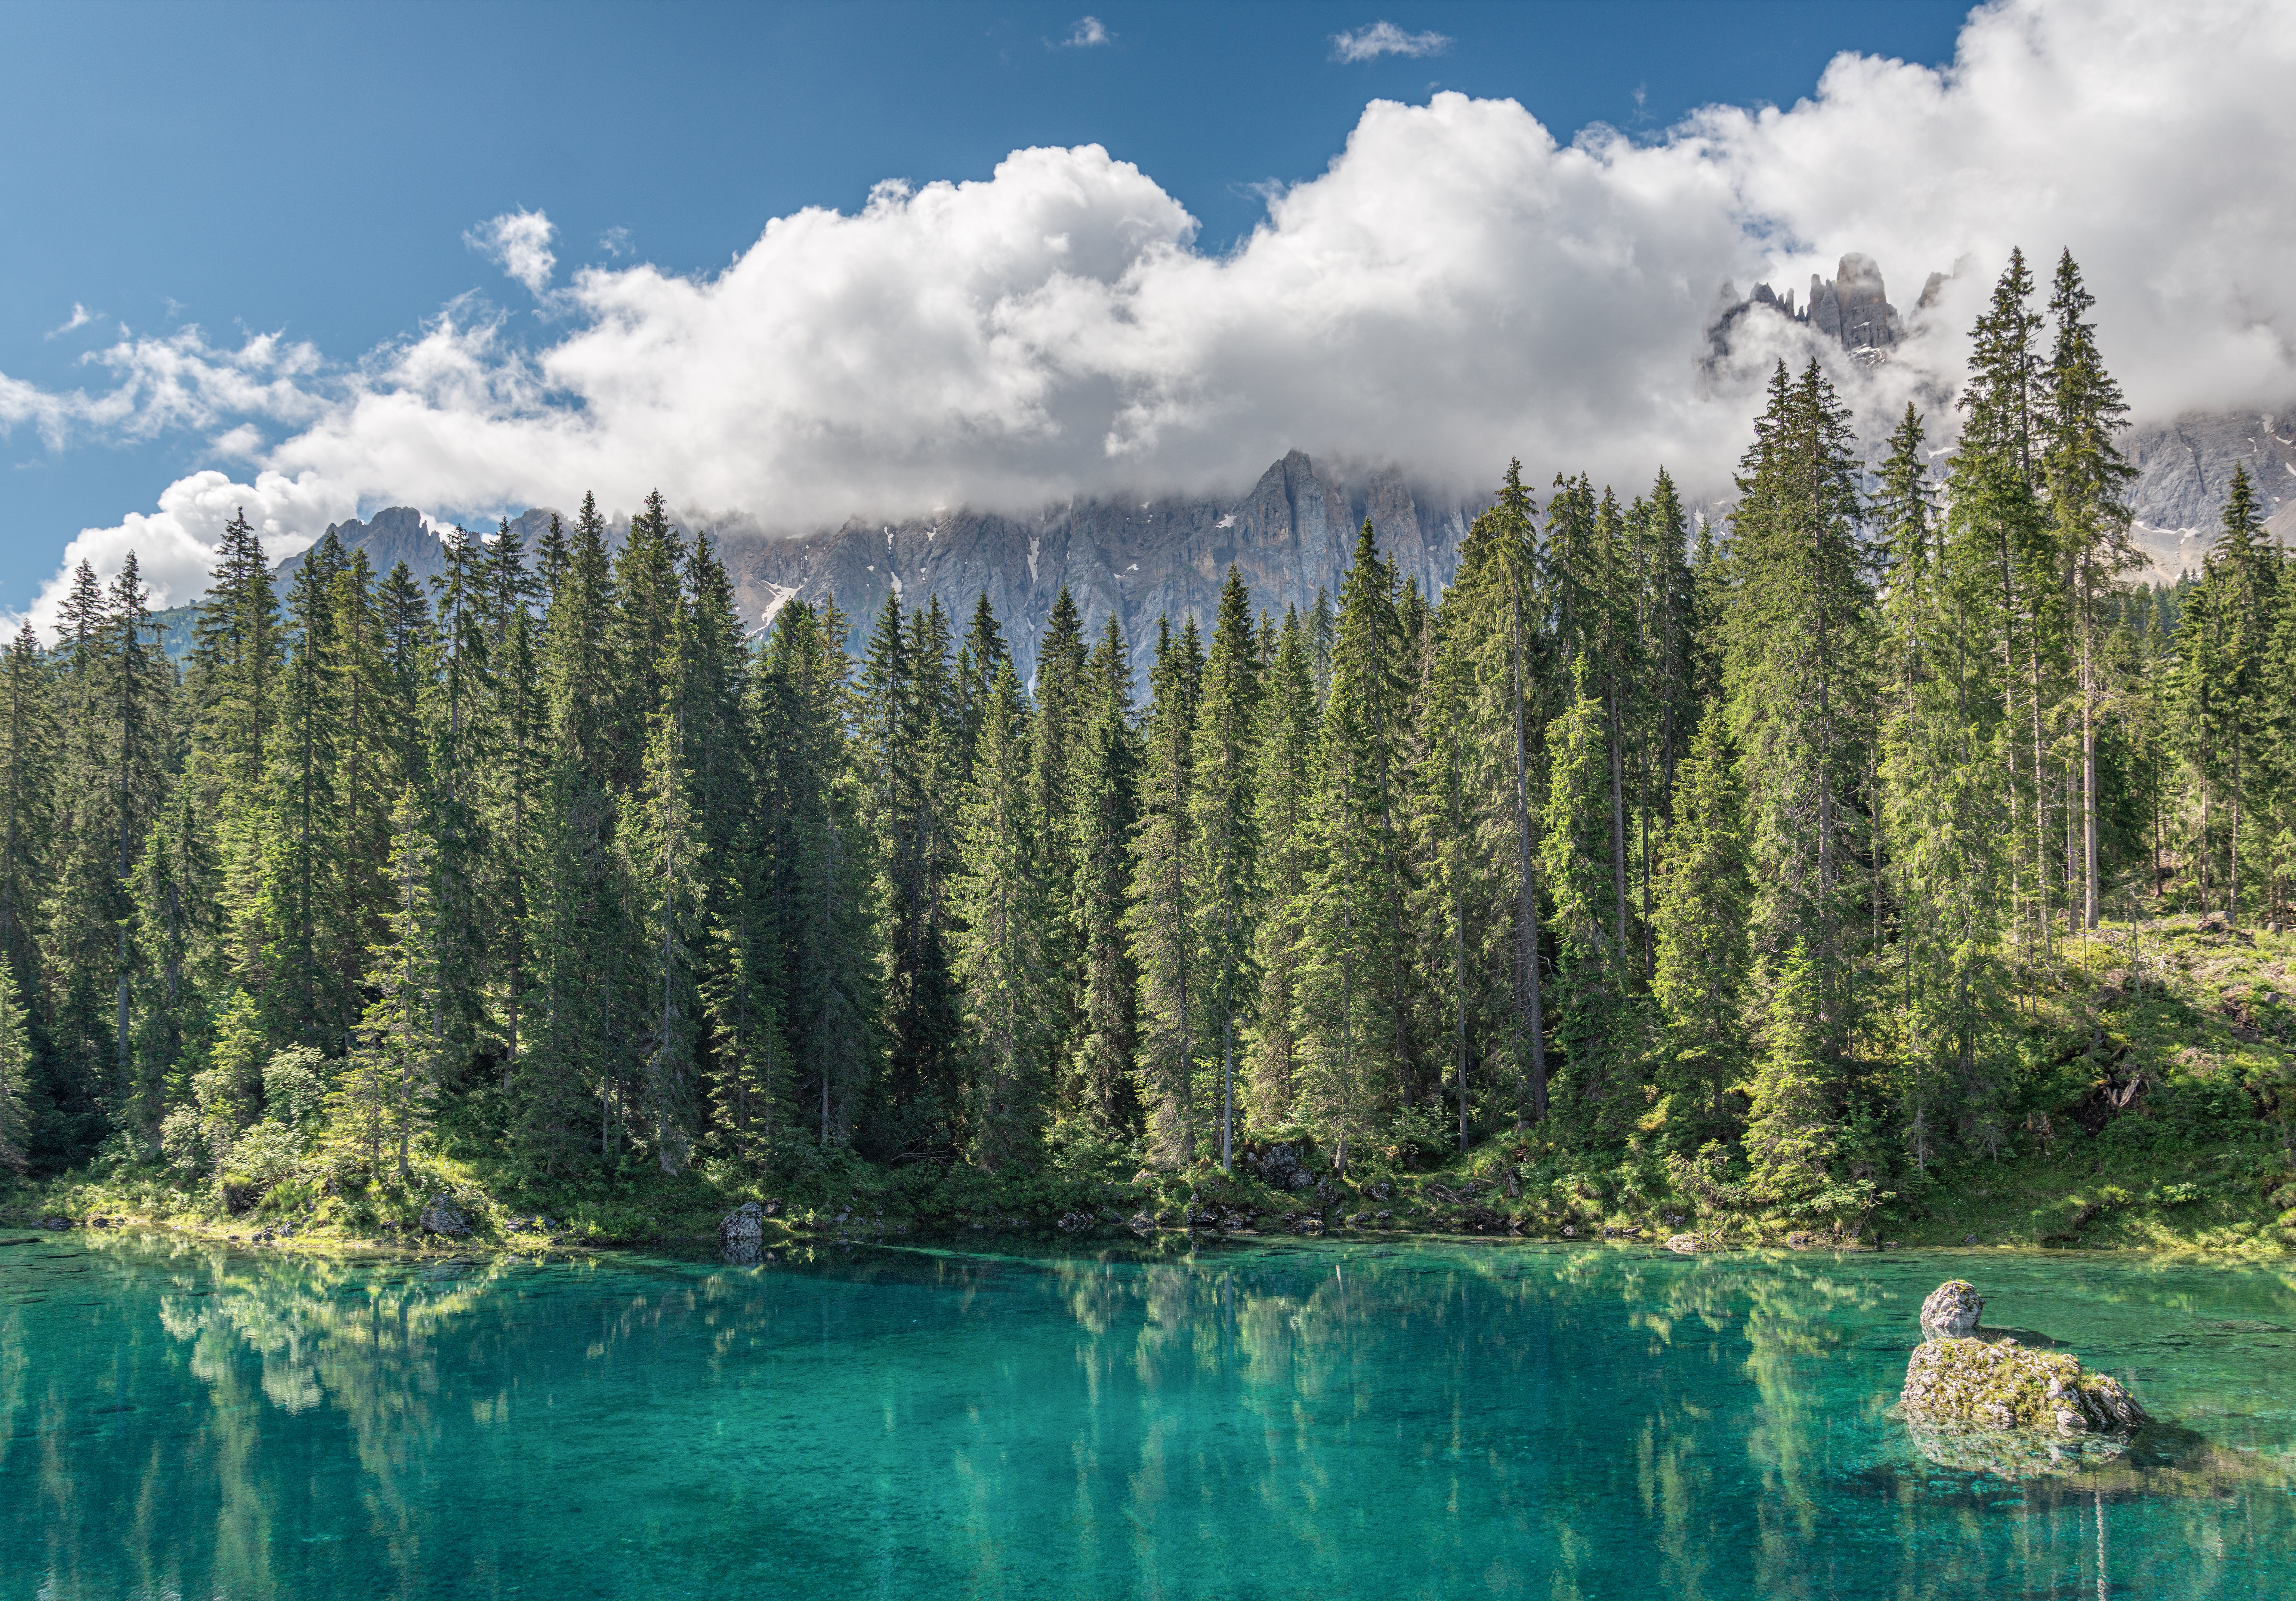 150595 free wallpaper 240x320 for phone, download images Landscape, Nature, Water, Trees, Mountains, Clouds, Lake, Forest 240x320 for mobile